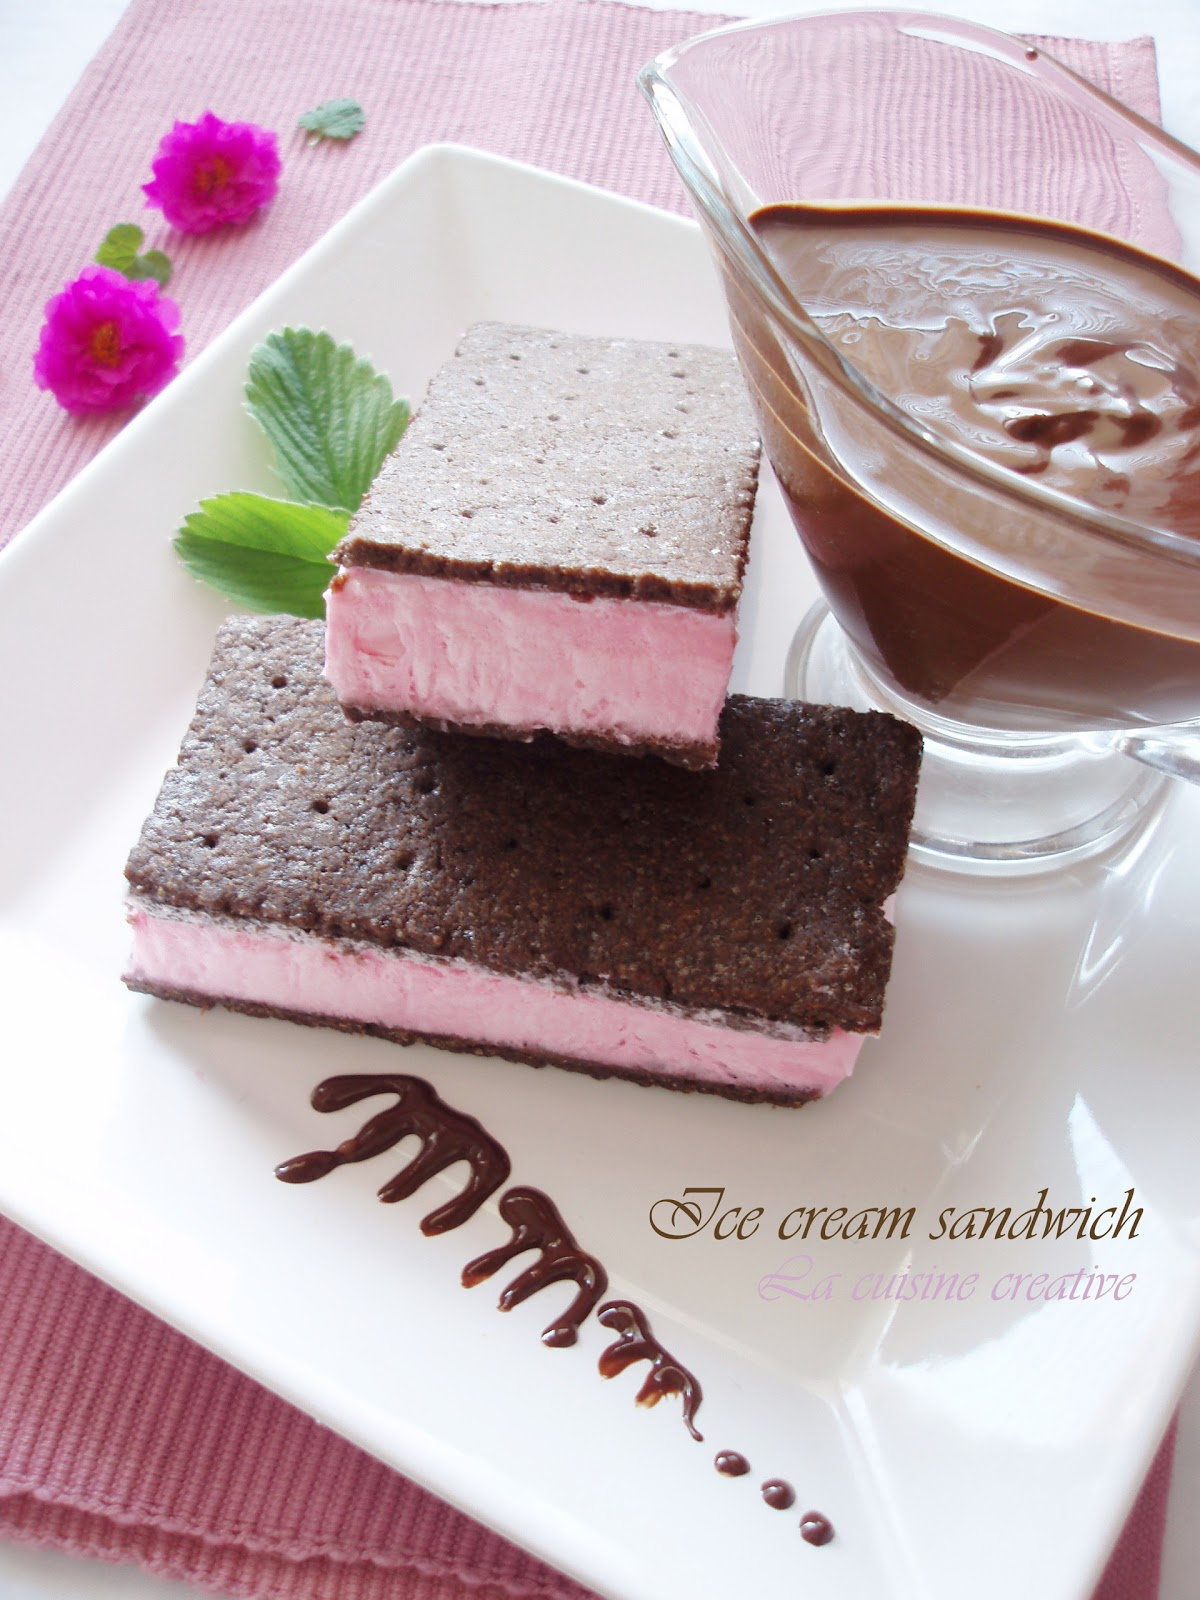 La cuisine creative: Classic ice cream sandwich